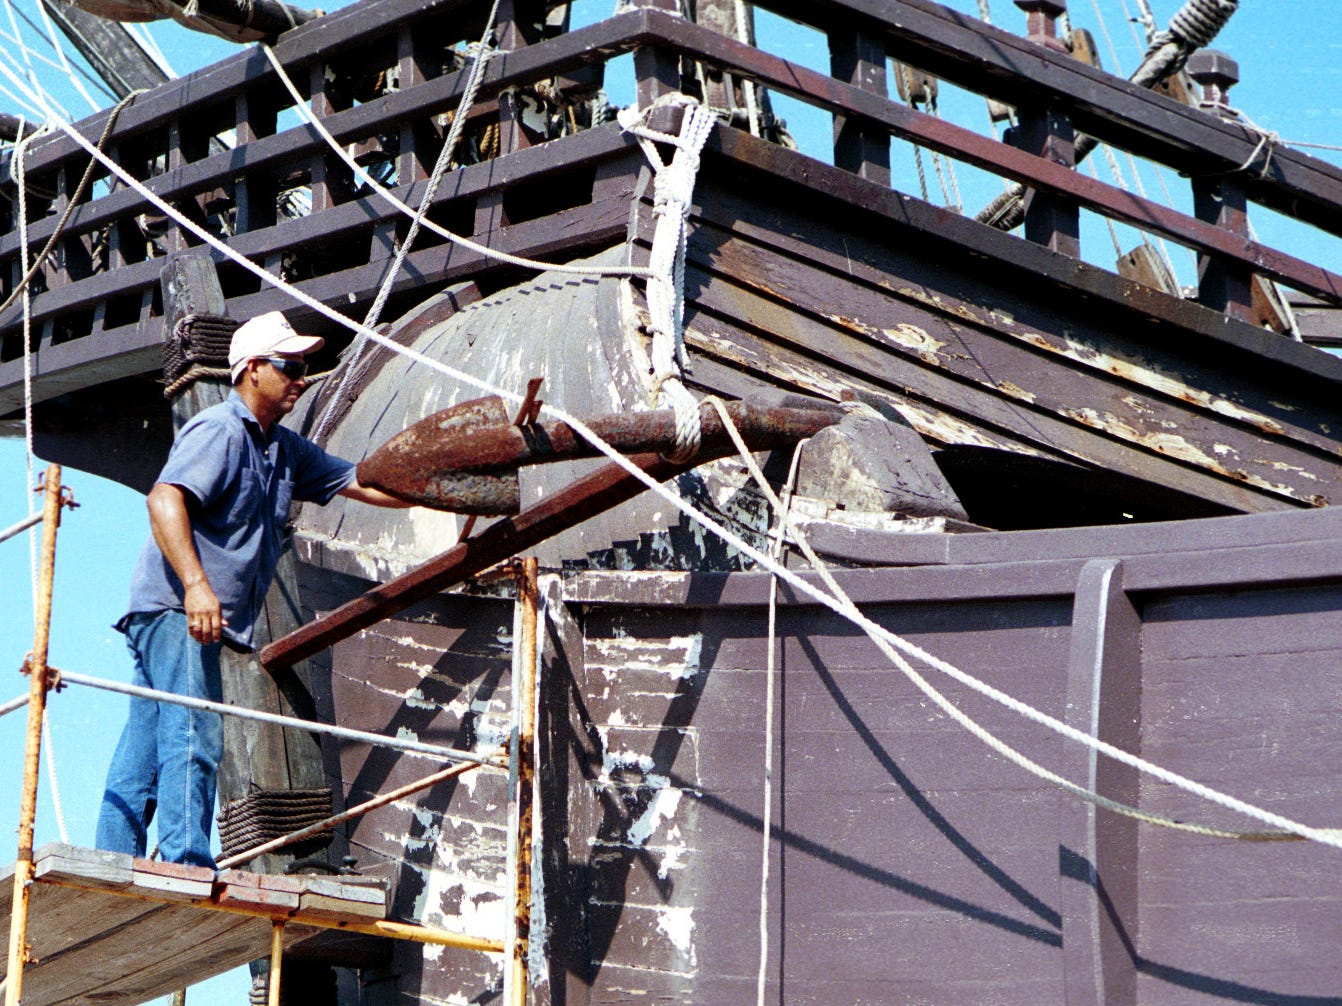 Ruben Pena works on a scaffold as he prepares the Santa Maria for a new coat of paint in October 1999. The Columbus Fleet Association has a plan to keep the ships open for the next several months while it negotiates the ships' return to the Spanish government.